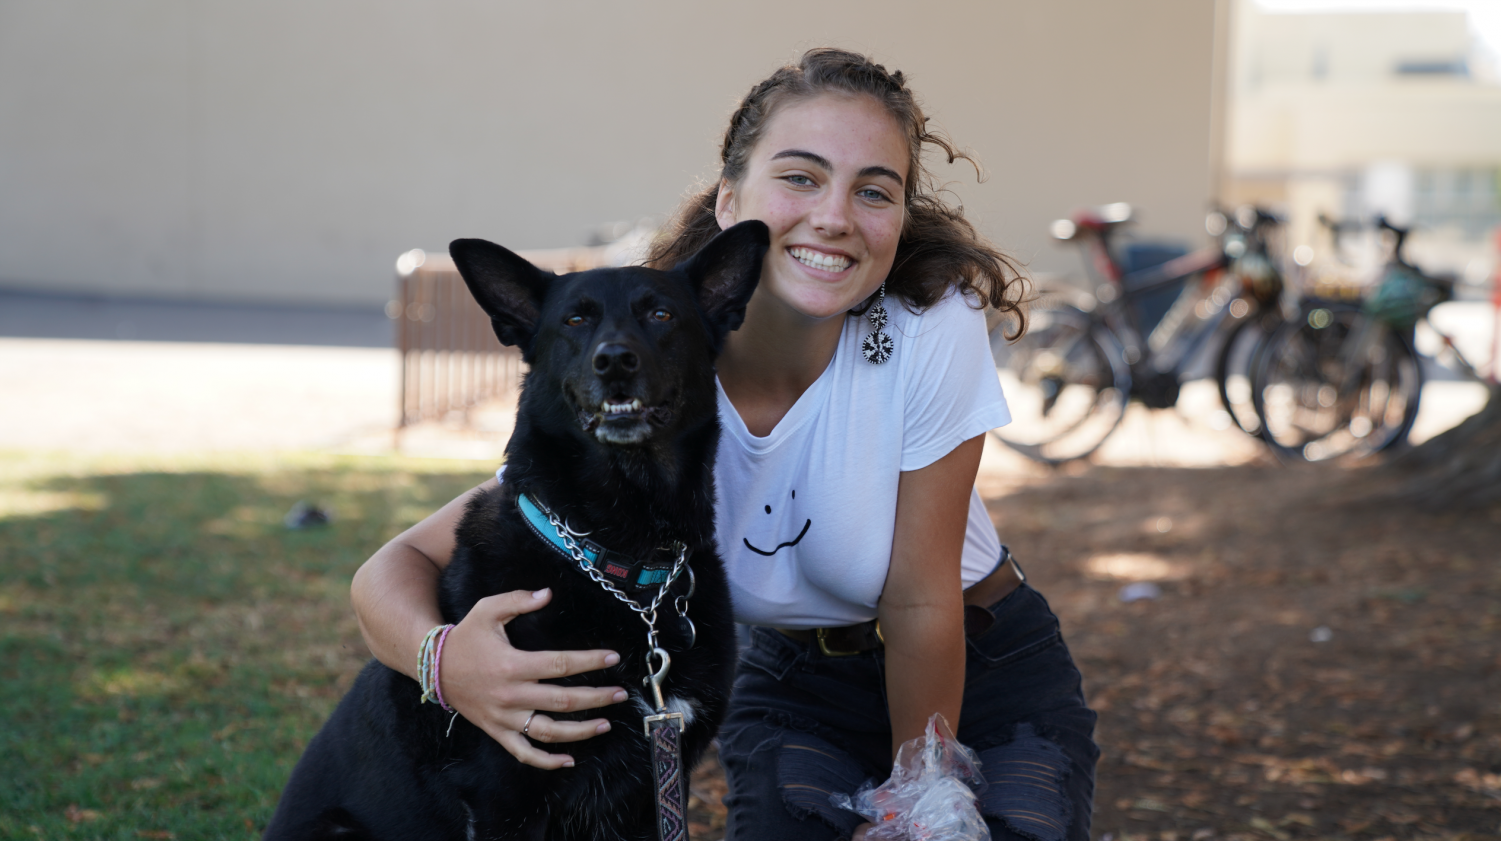 Sophomore Serena Gaylord & German Shepherd Border Collie mix Jenny